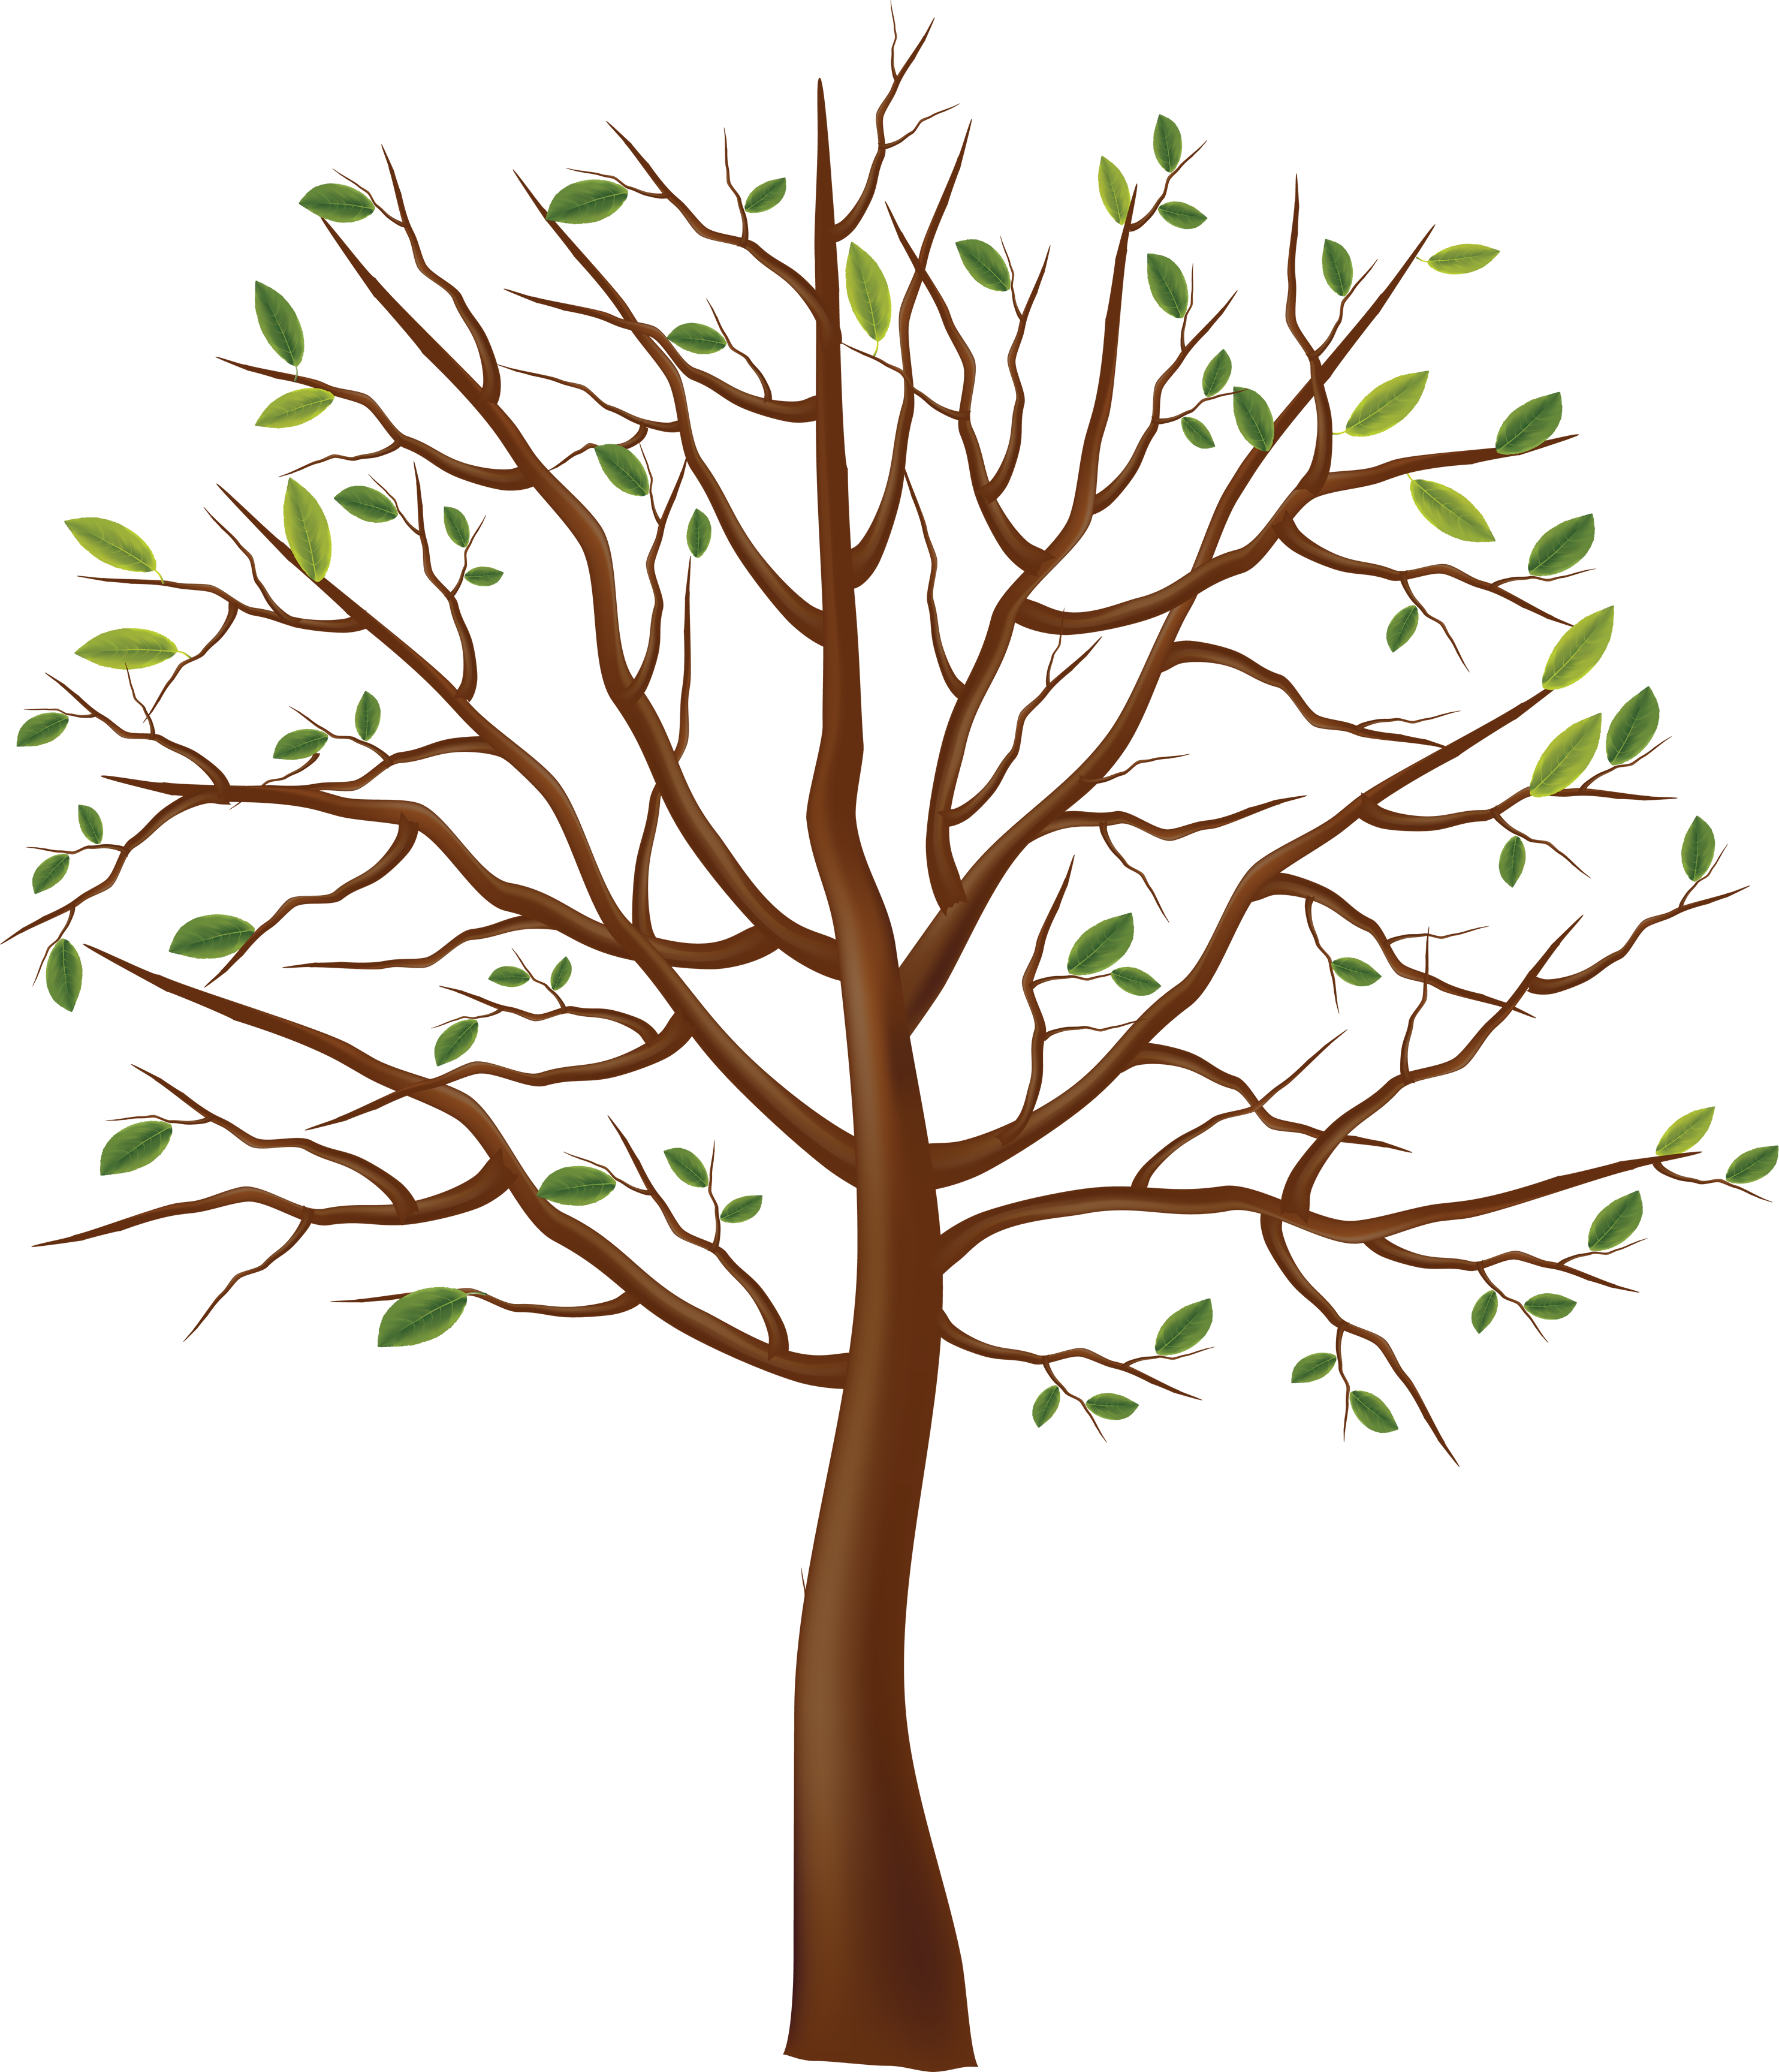 Trees drawing png. Tree image id photo